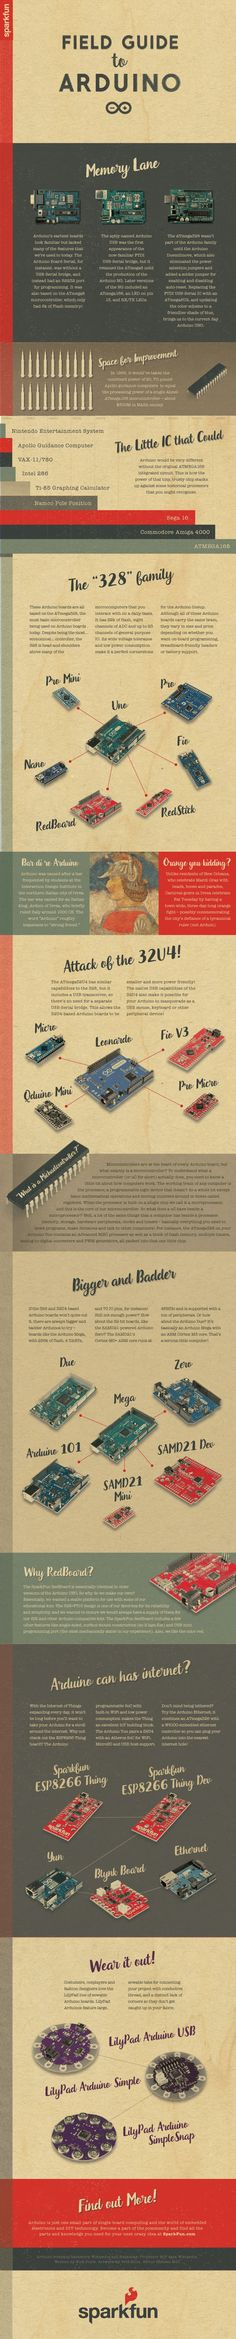 Field guide to arduino sparkfun